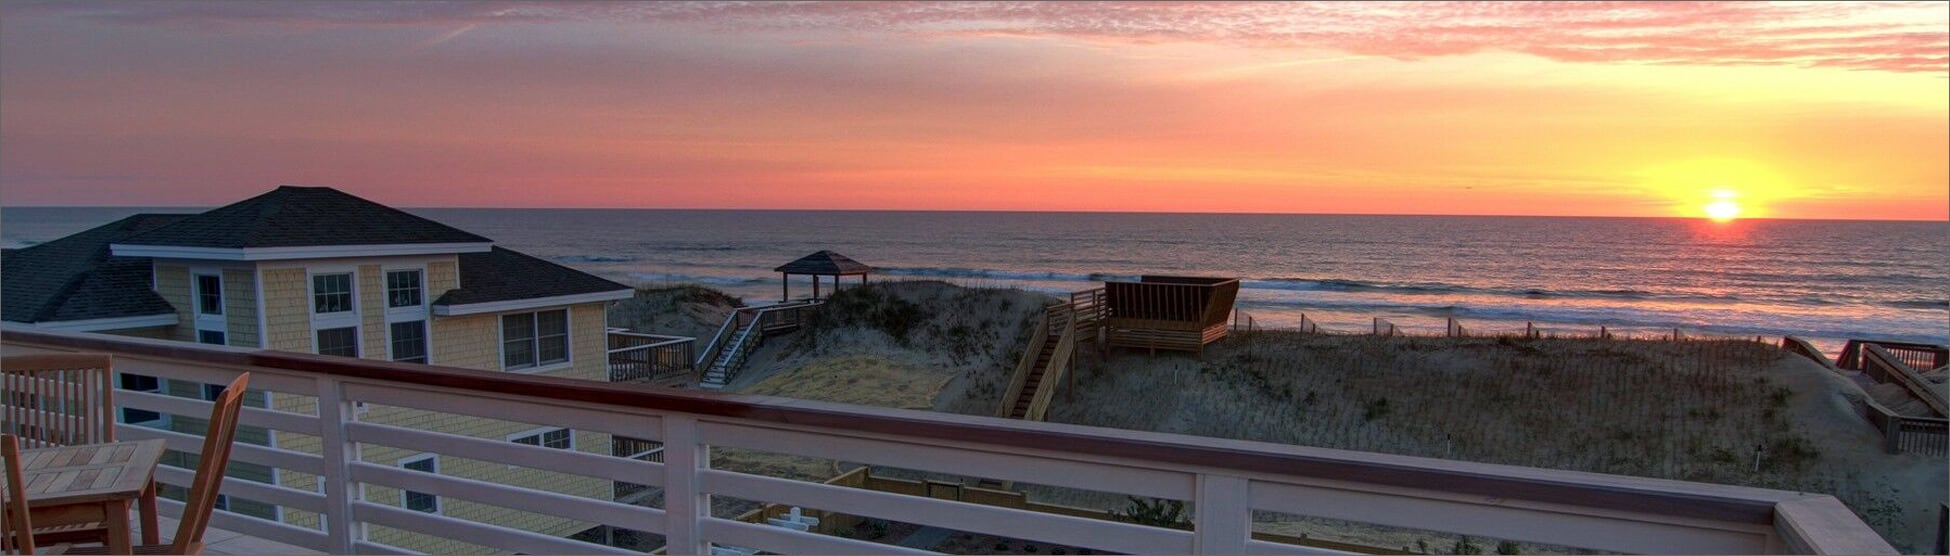 Outer Banks Oceanfront Rentals Kees Outer Banks Vacation Rentals